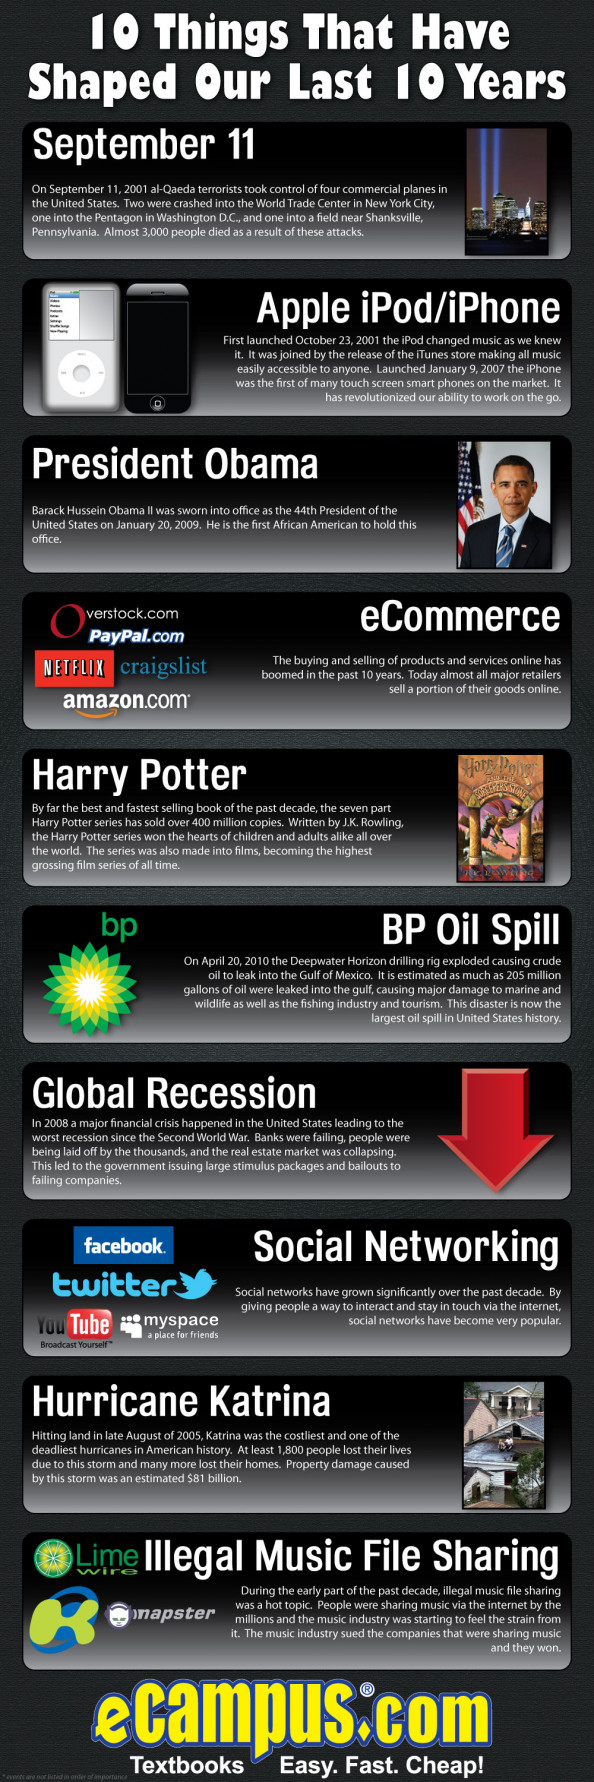 10 Things that have Shaped the Last Ten Years  Infographic